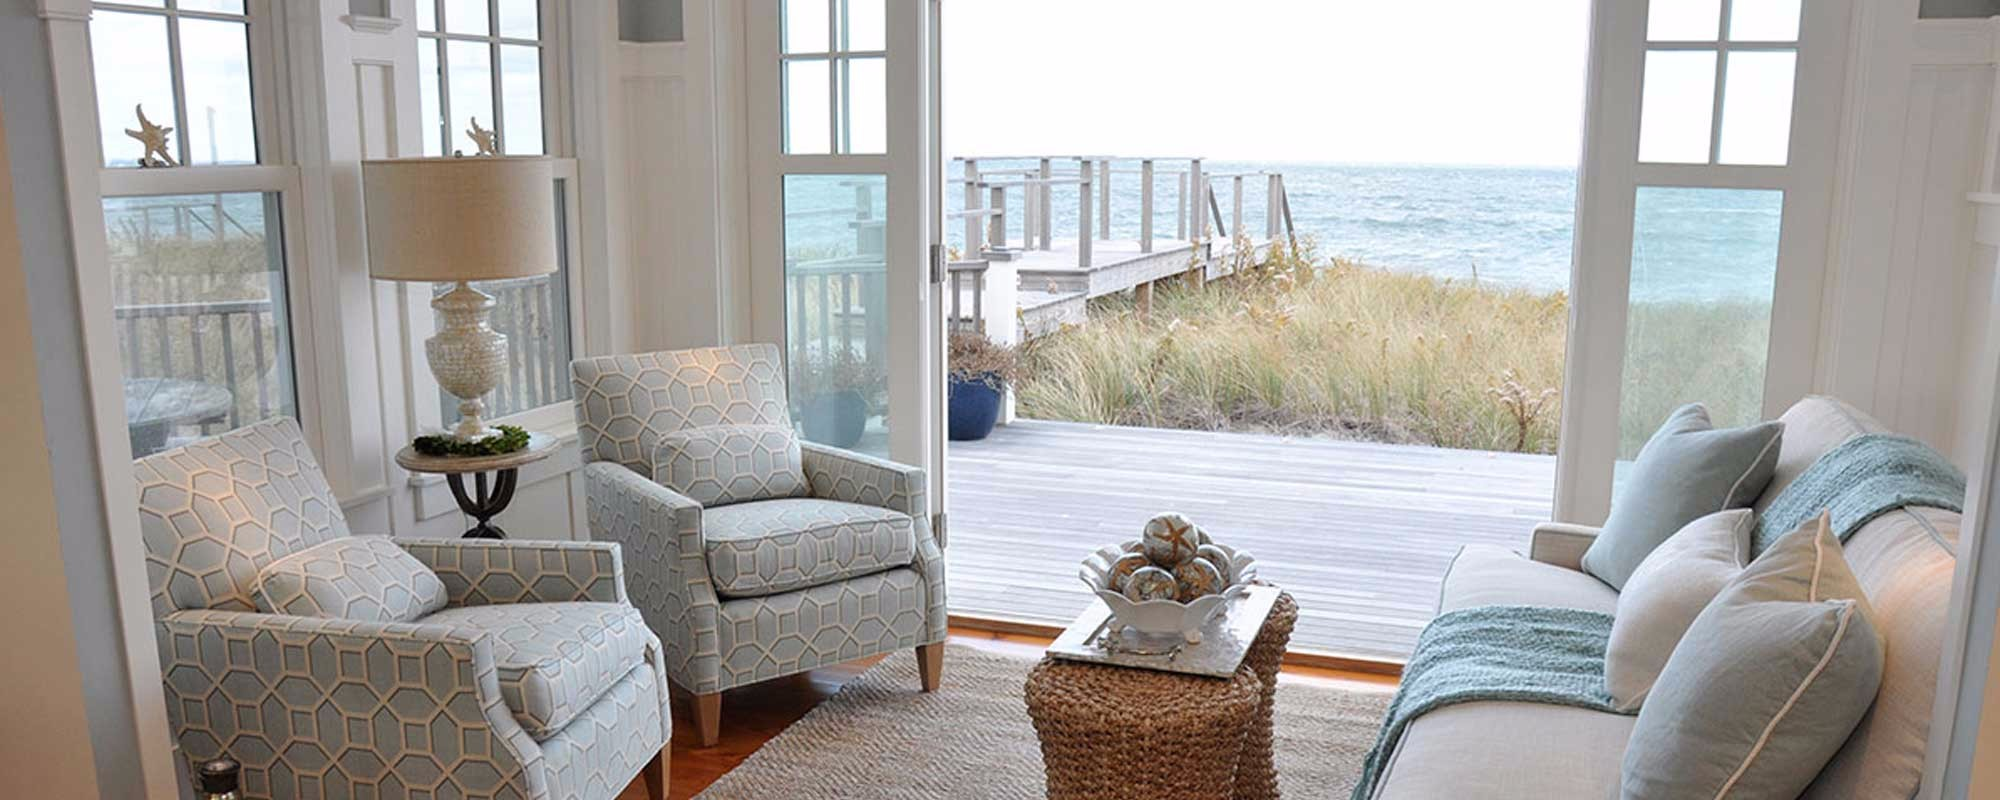 Cape Cod Interior Design Ideas - Best Accessories Home 2017